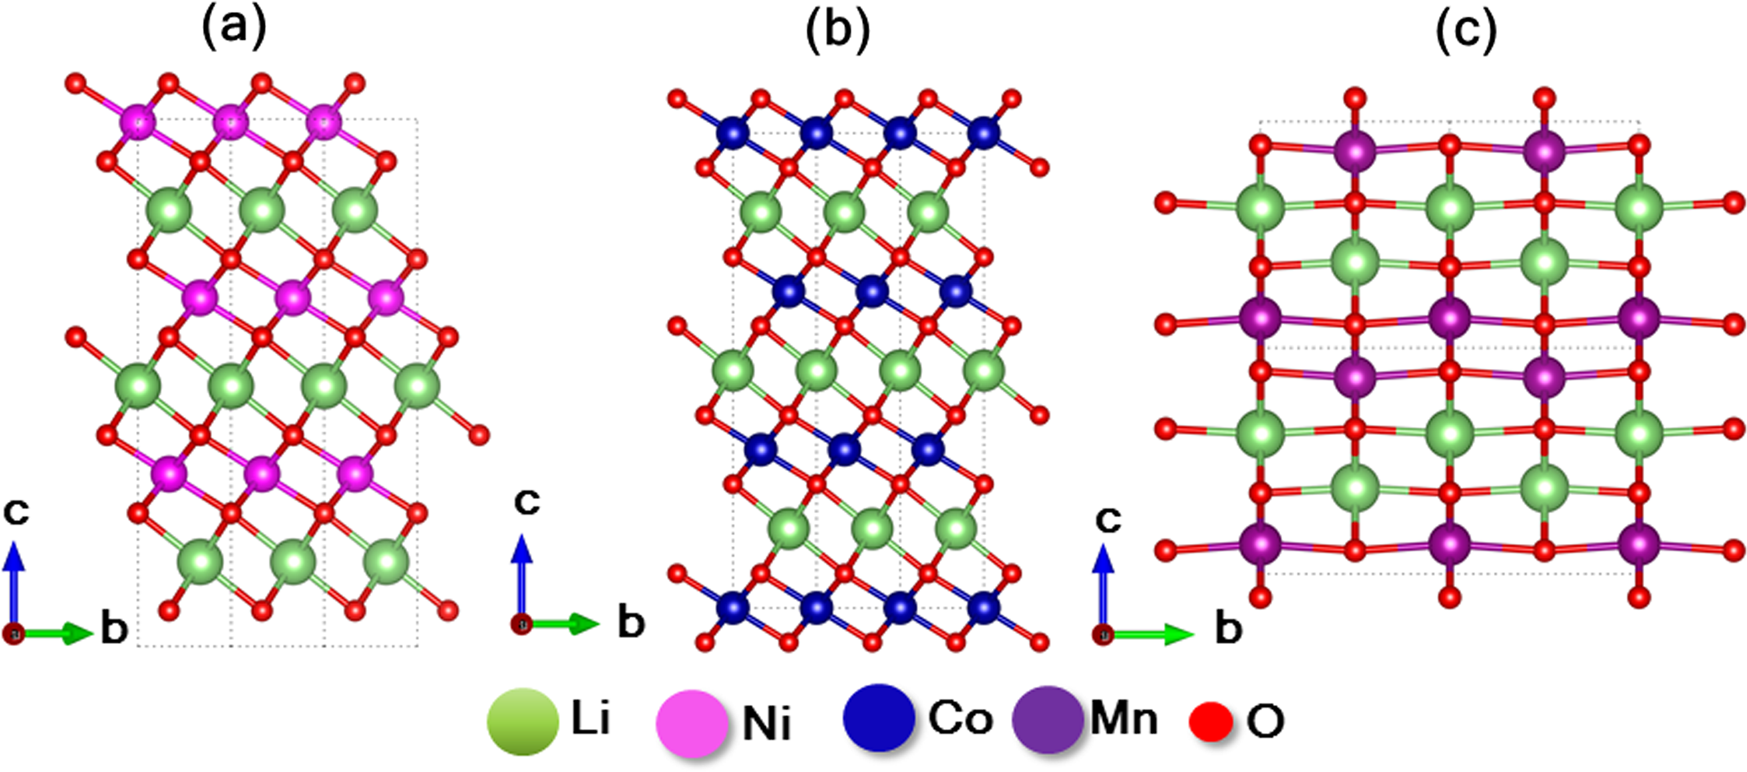 Predicting accurate cathode properties of layered oxide